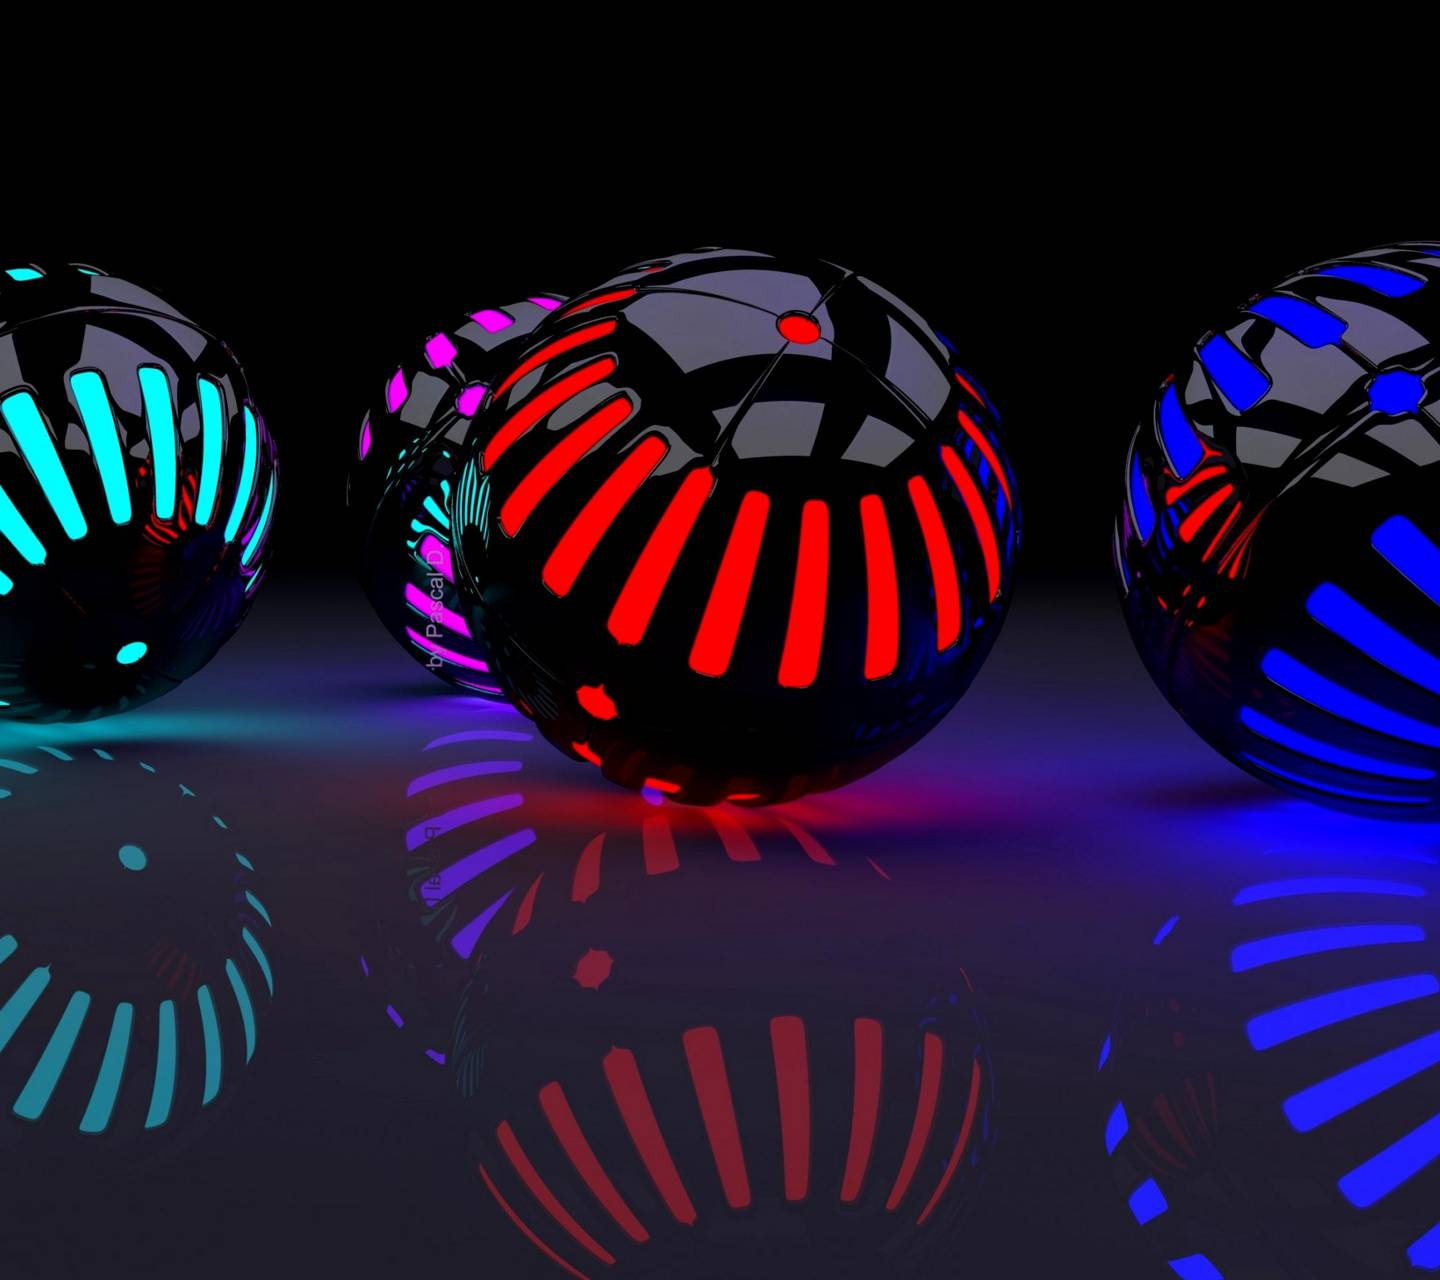 Neon Balls Wallpaper By Pavelericsson